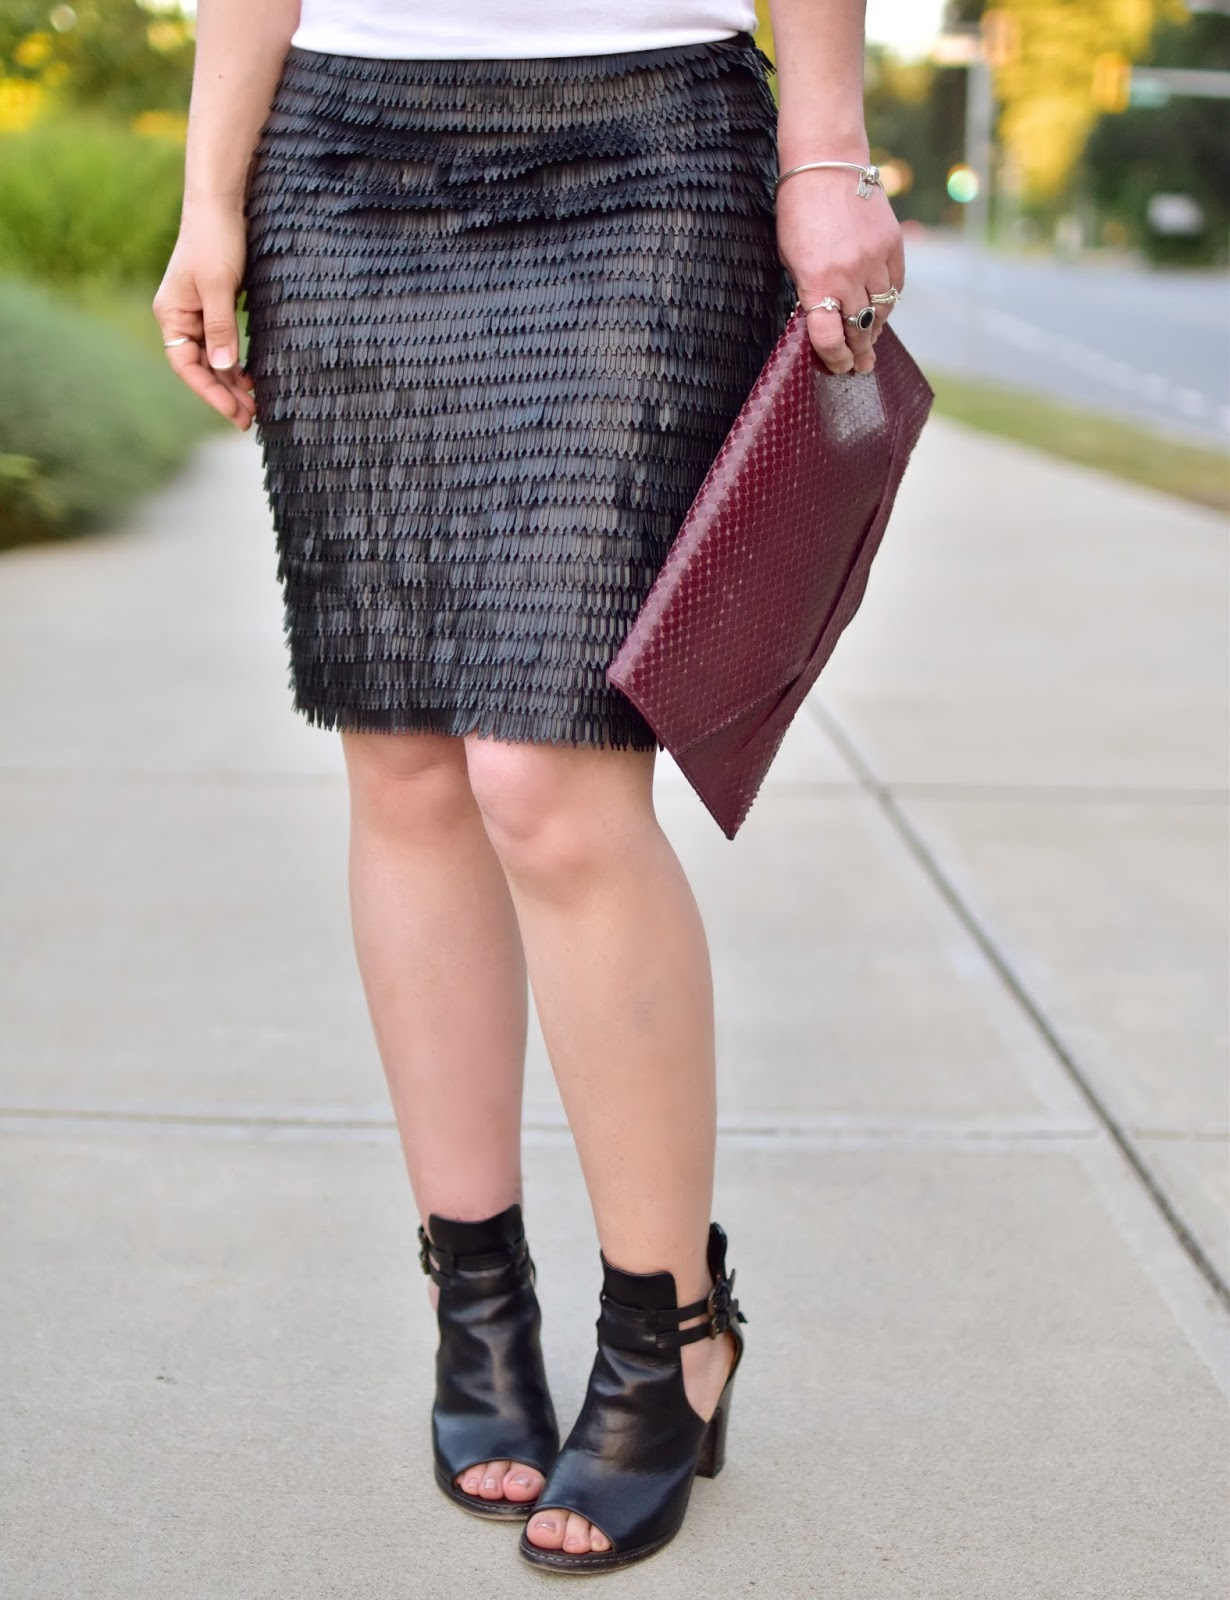 fish-scale-textured pleather skirt, cut-out booties, and faux-snake clutch